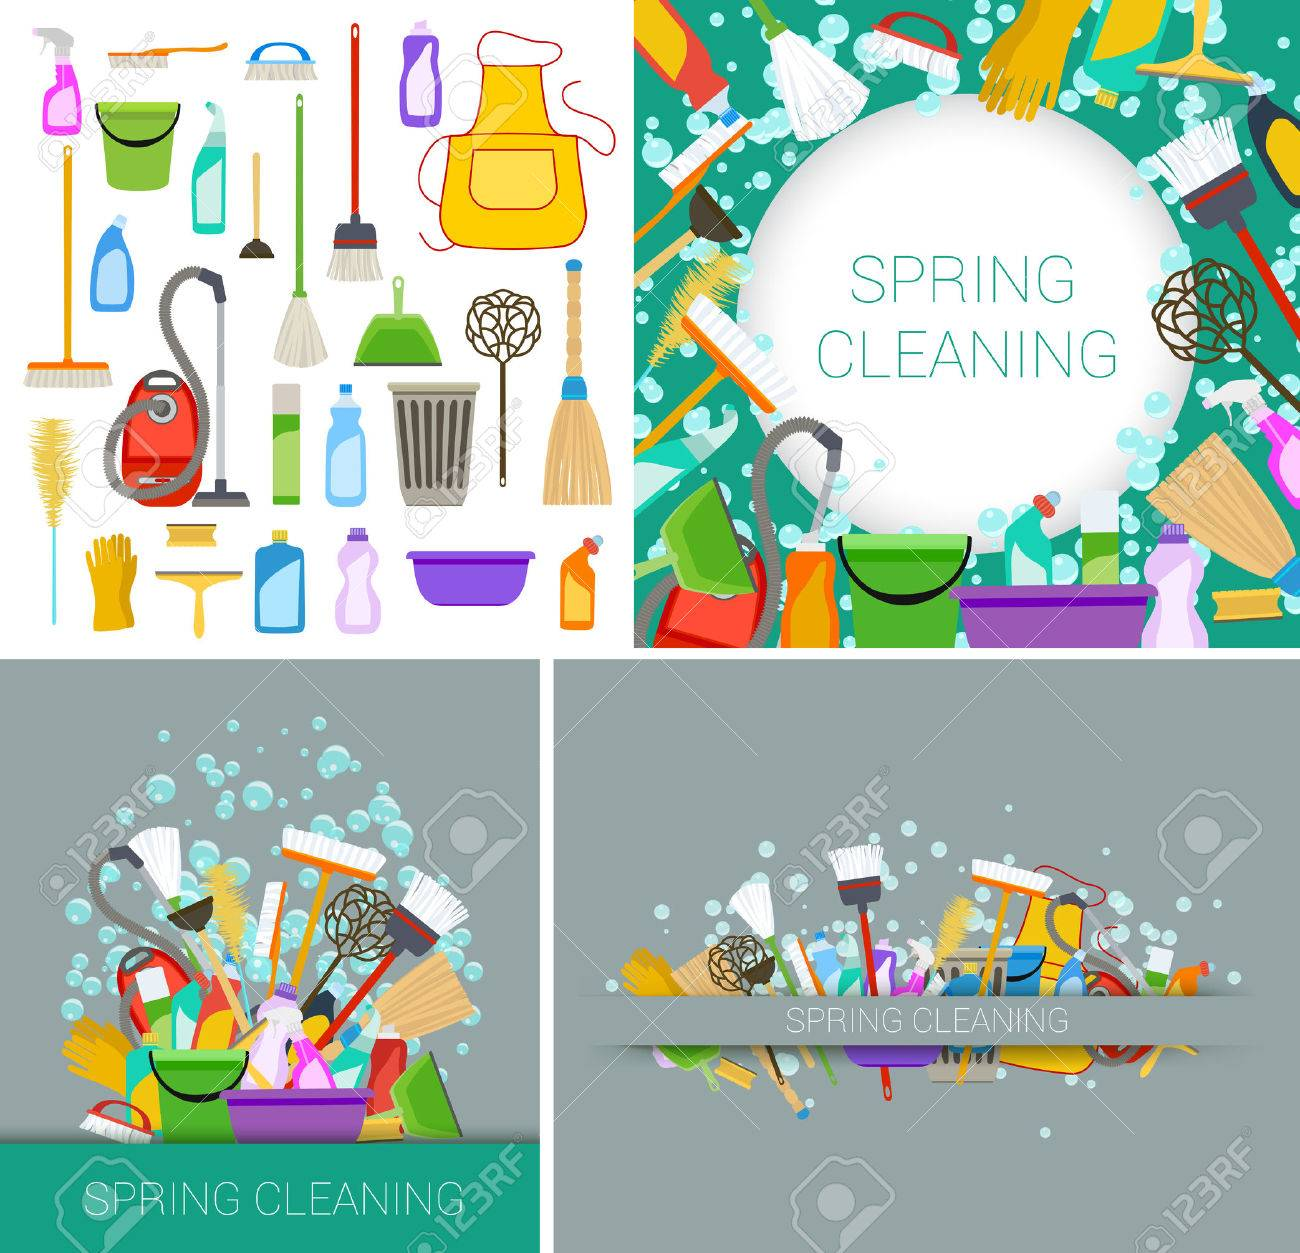 spring cleaning images & stock pictures. royalty free spring